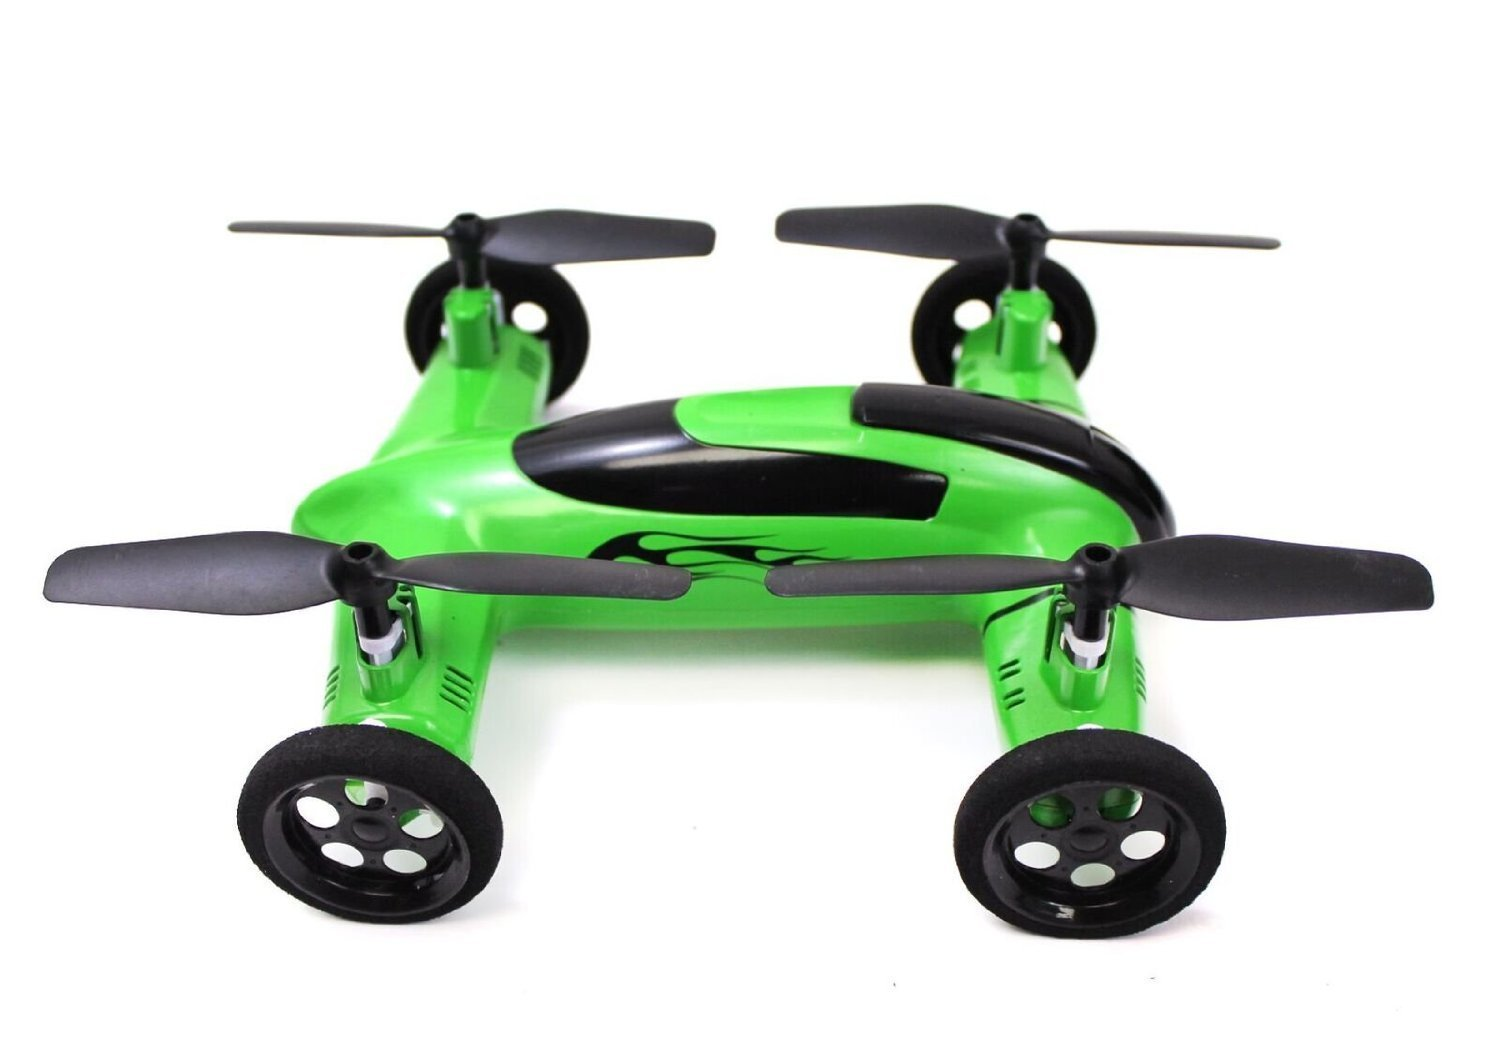 rc remote control cars for sale with Flycar X9 Rc Remote Control Quadcopter Drone Flying Car By Syma on Flycar X9 Rc Remote Control Quadcopter Drone Flying Car By Syma likewise Tamiya Mercedes Benz Unimog 425 also Wholesale Mini Robot Kit also RC Submarine 40 likewise RCTractorWheeledLoaderConstructionVehicle114JHC0806.